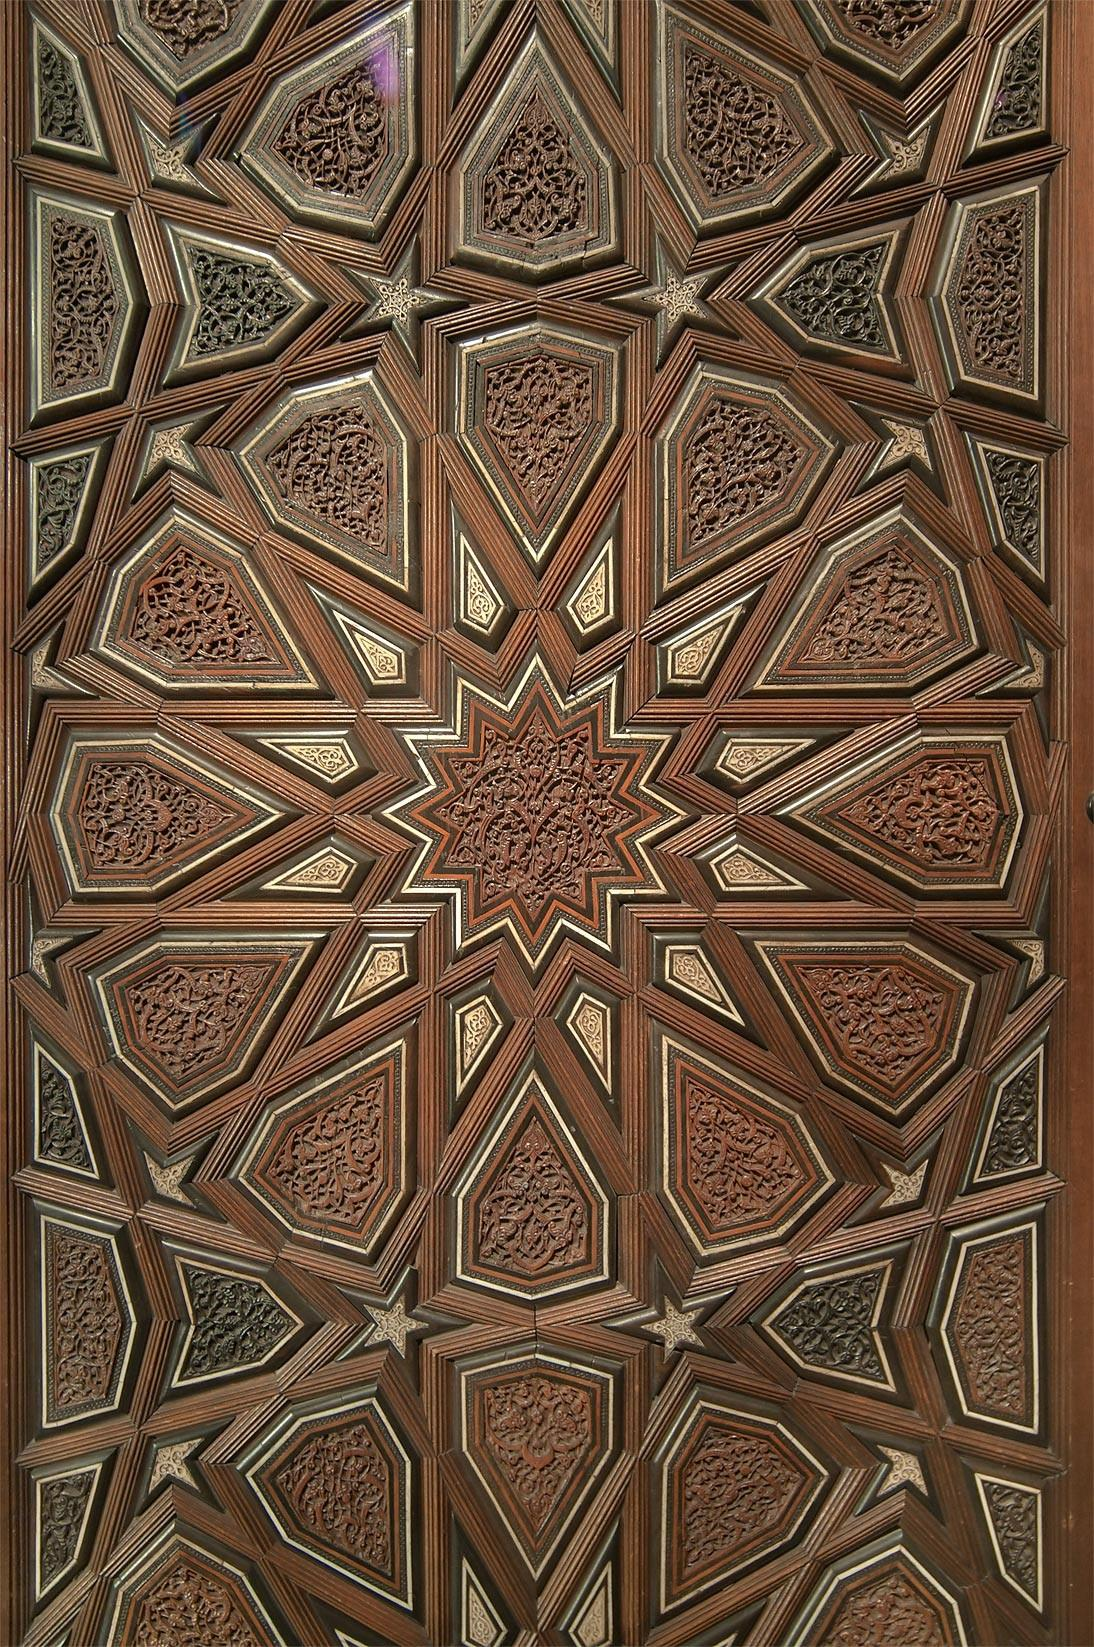 Islamic Geometric Patterns Search